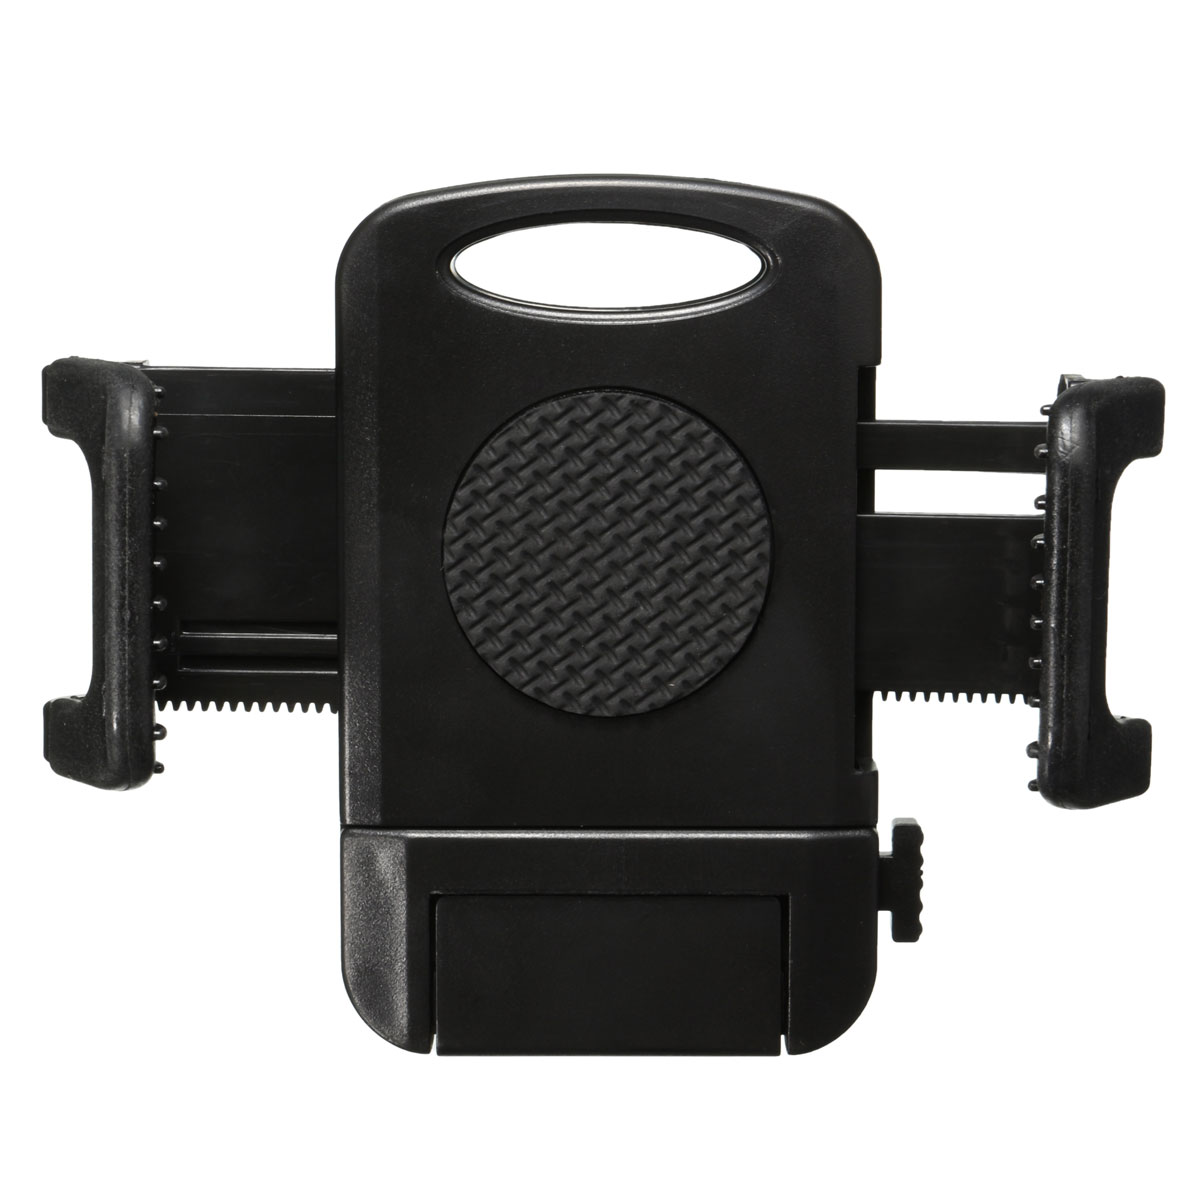 Universal Car Vehicle Air Vent Mount Phone Holder Cradle Stand For Mobile Most Phones